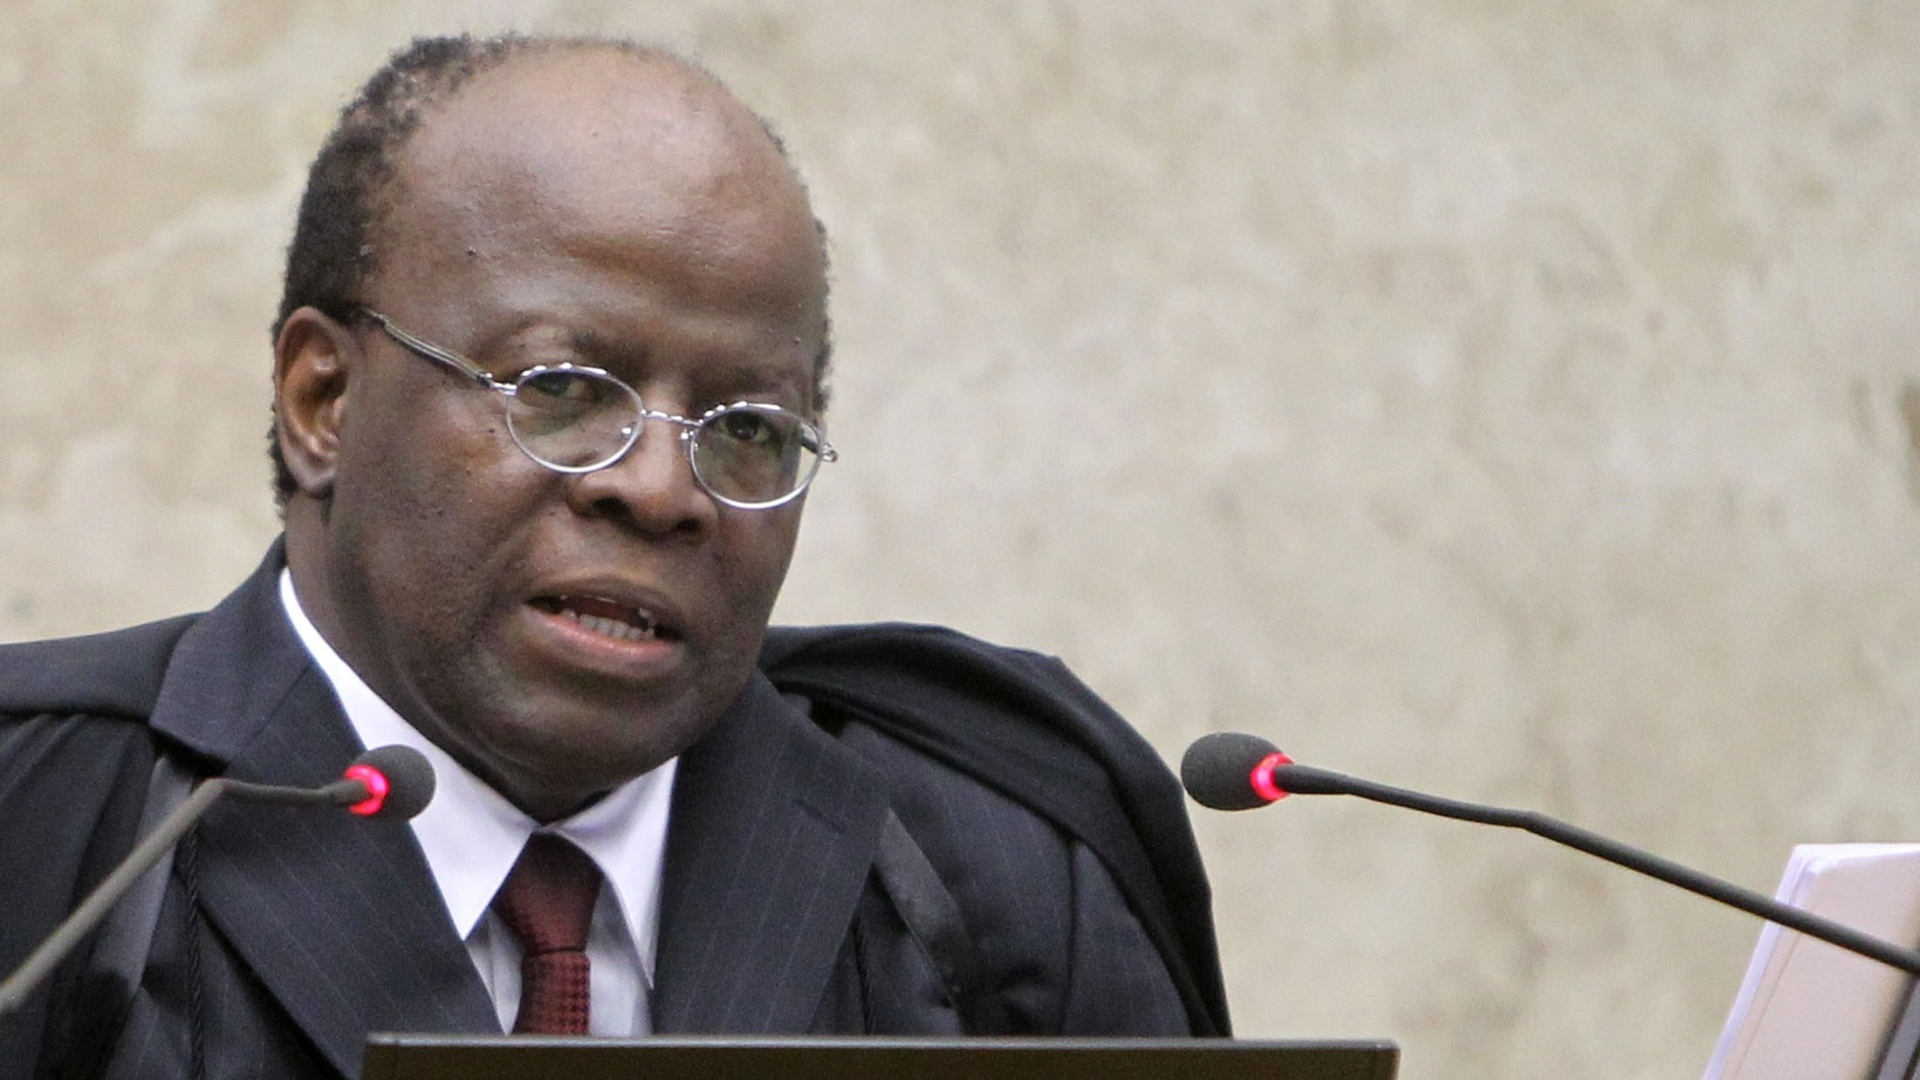 28.nov.2012 - Joaquim Barbosa, ministro-relator no processo do mensalão, durante sessão do STF (Superior Tribunal Federal) que define as três últimas penas: as do deputado federal João Paulo Cunha (PT-SP),  do ex-deputado federal Roberto Jefferson (PTB-RJ) e do ex-tesoureiro informal do PTB Emerson Palmieri